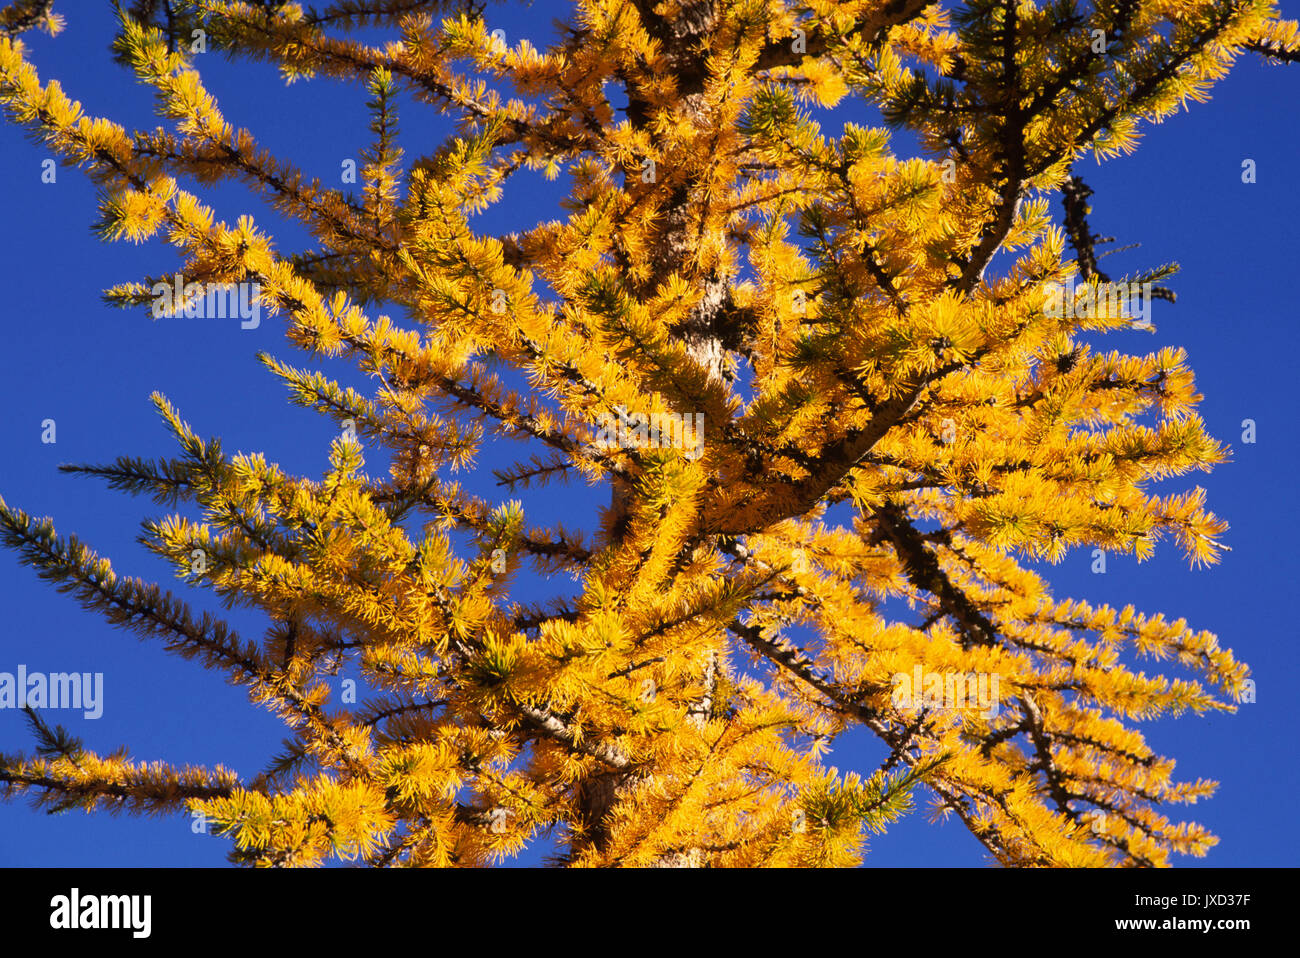 Larch near Ingalls Pass, Alpine Lakes Wilderness, Wenatchee National Forest, Washington - Stock Image